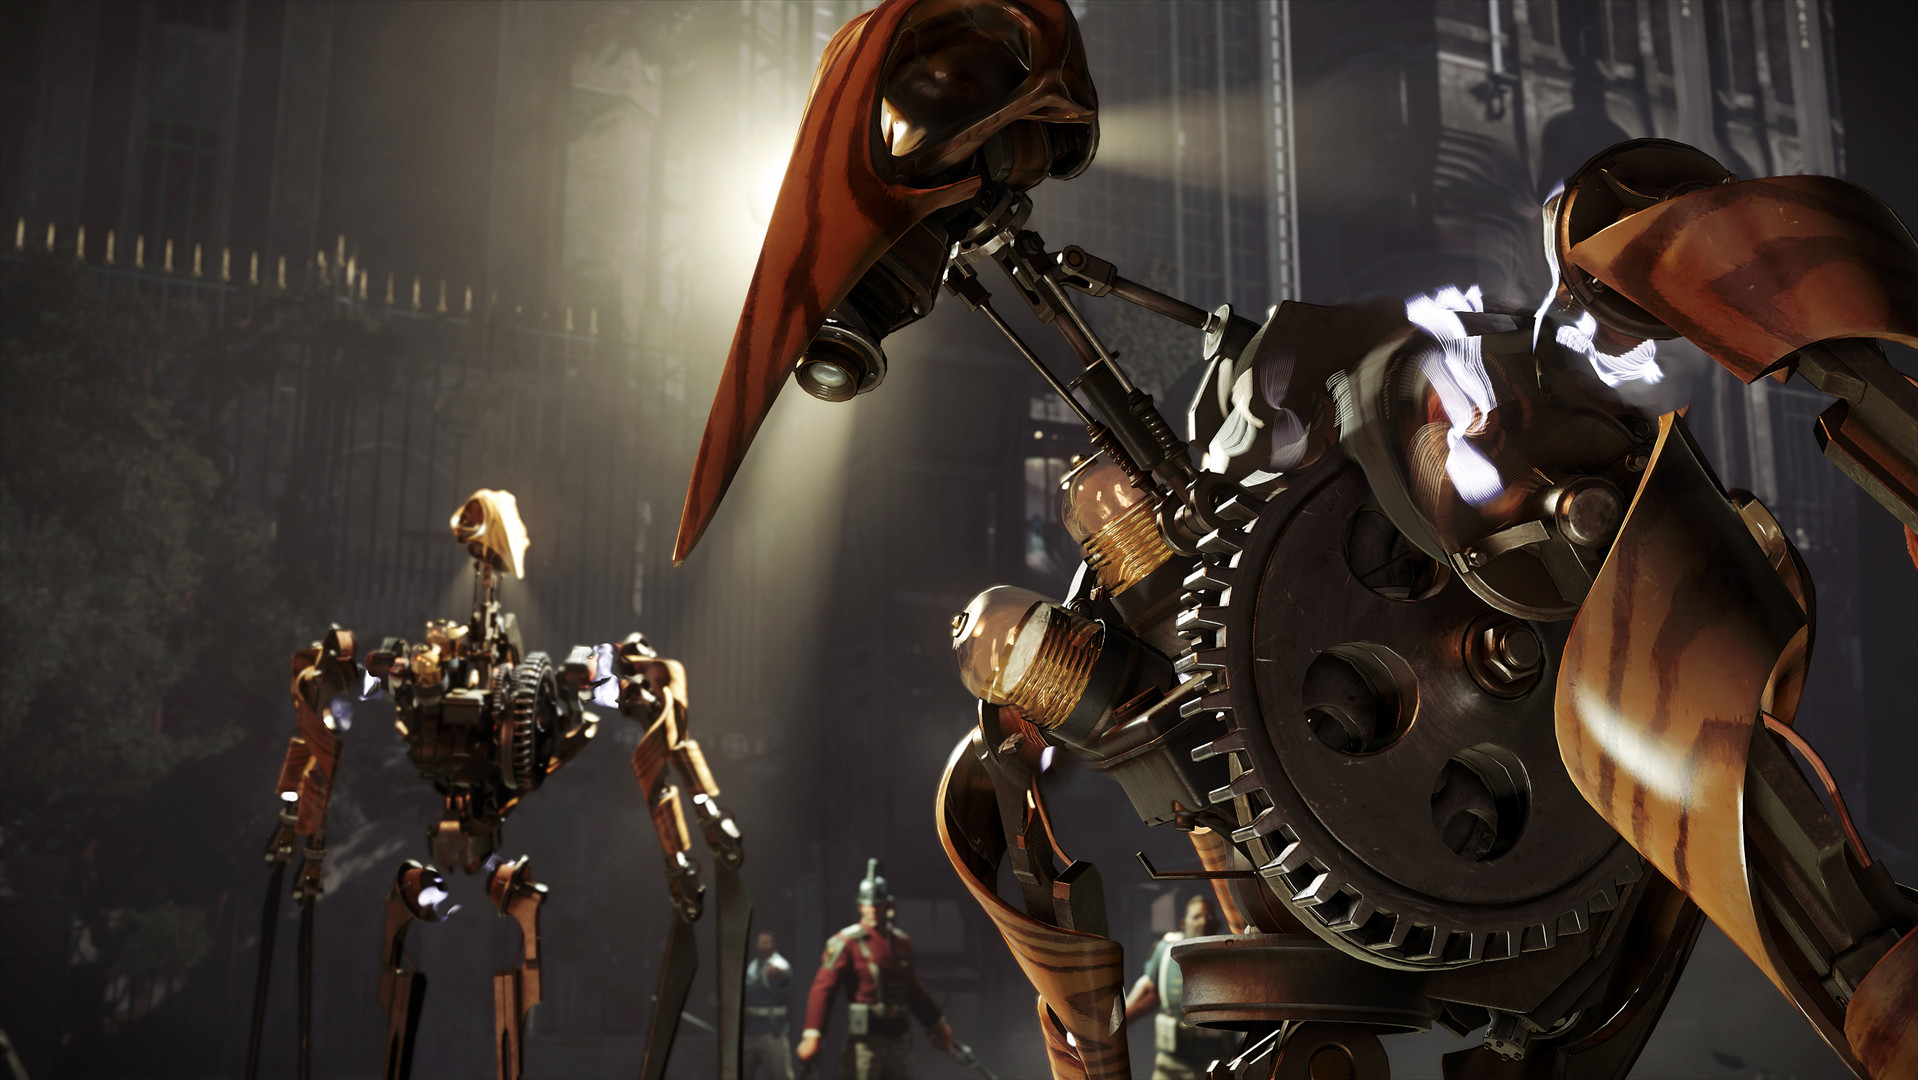 dishonored-2-image-5